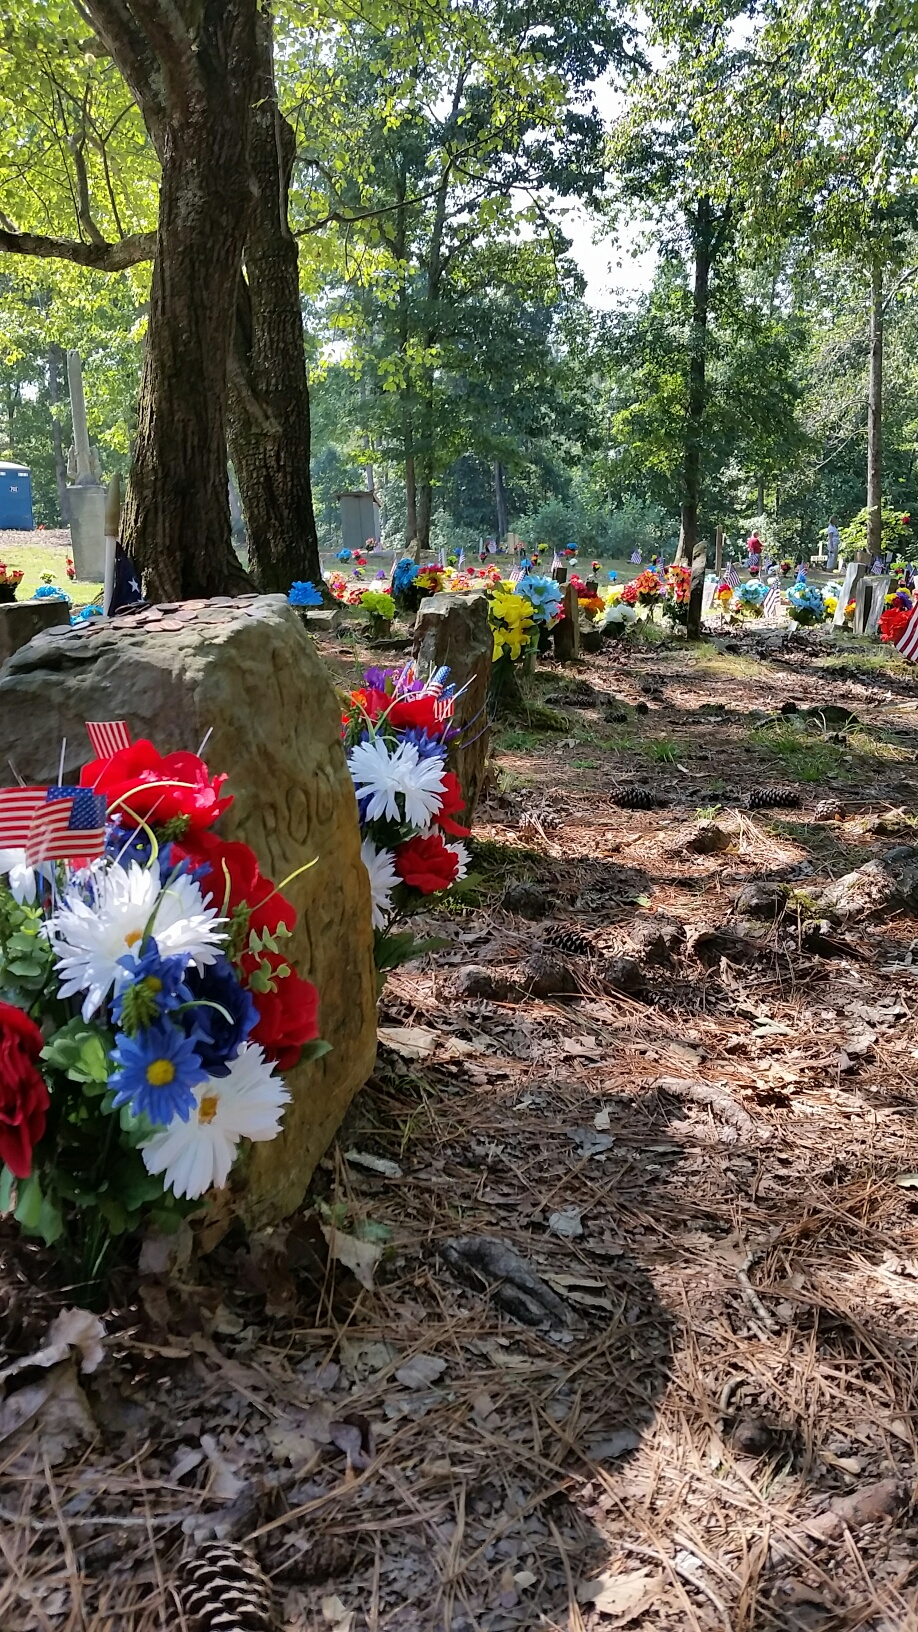 2019 Coon Dog Cemetery Labor Day Celebration